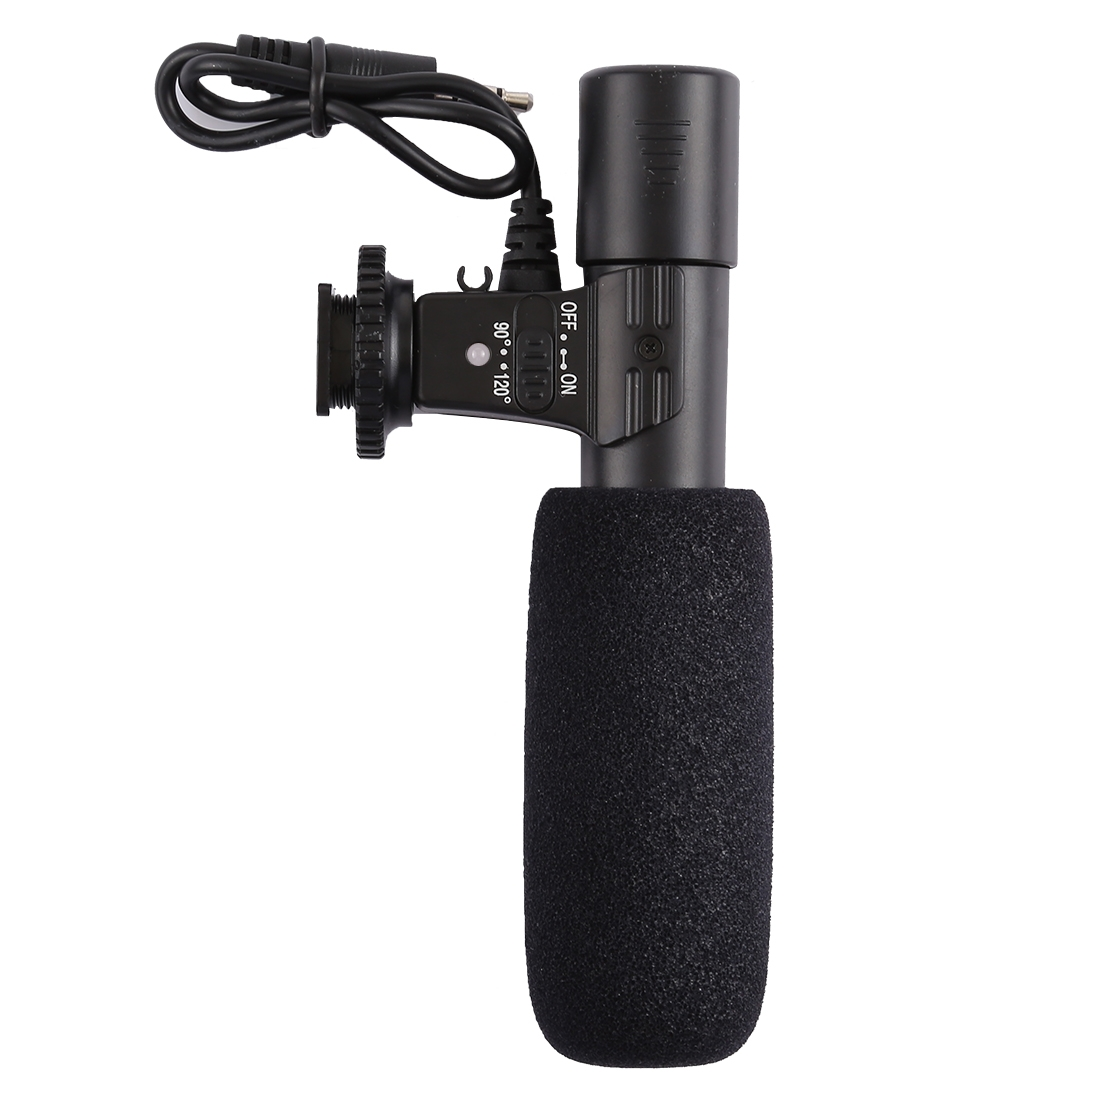 MIC-04 30-18000Hz Rate Sound Clear Stereo Microphone for Smartphone, Cable  Length: 28cm